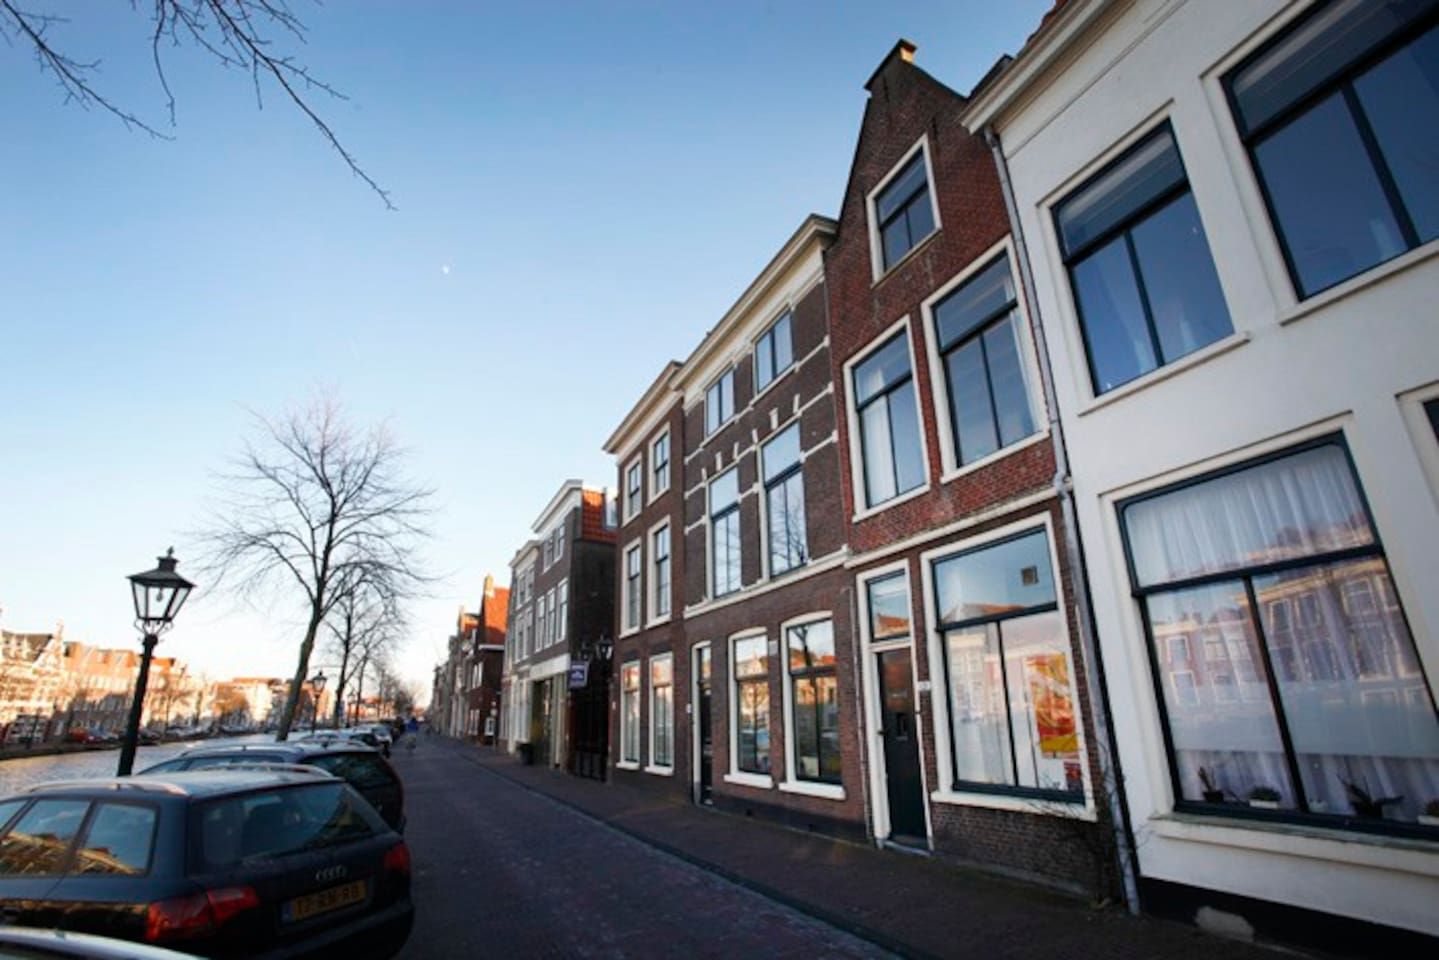 Your perfect location in the heart of the city of Leiden. Staying in this canal side house is a real dutch experience